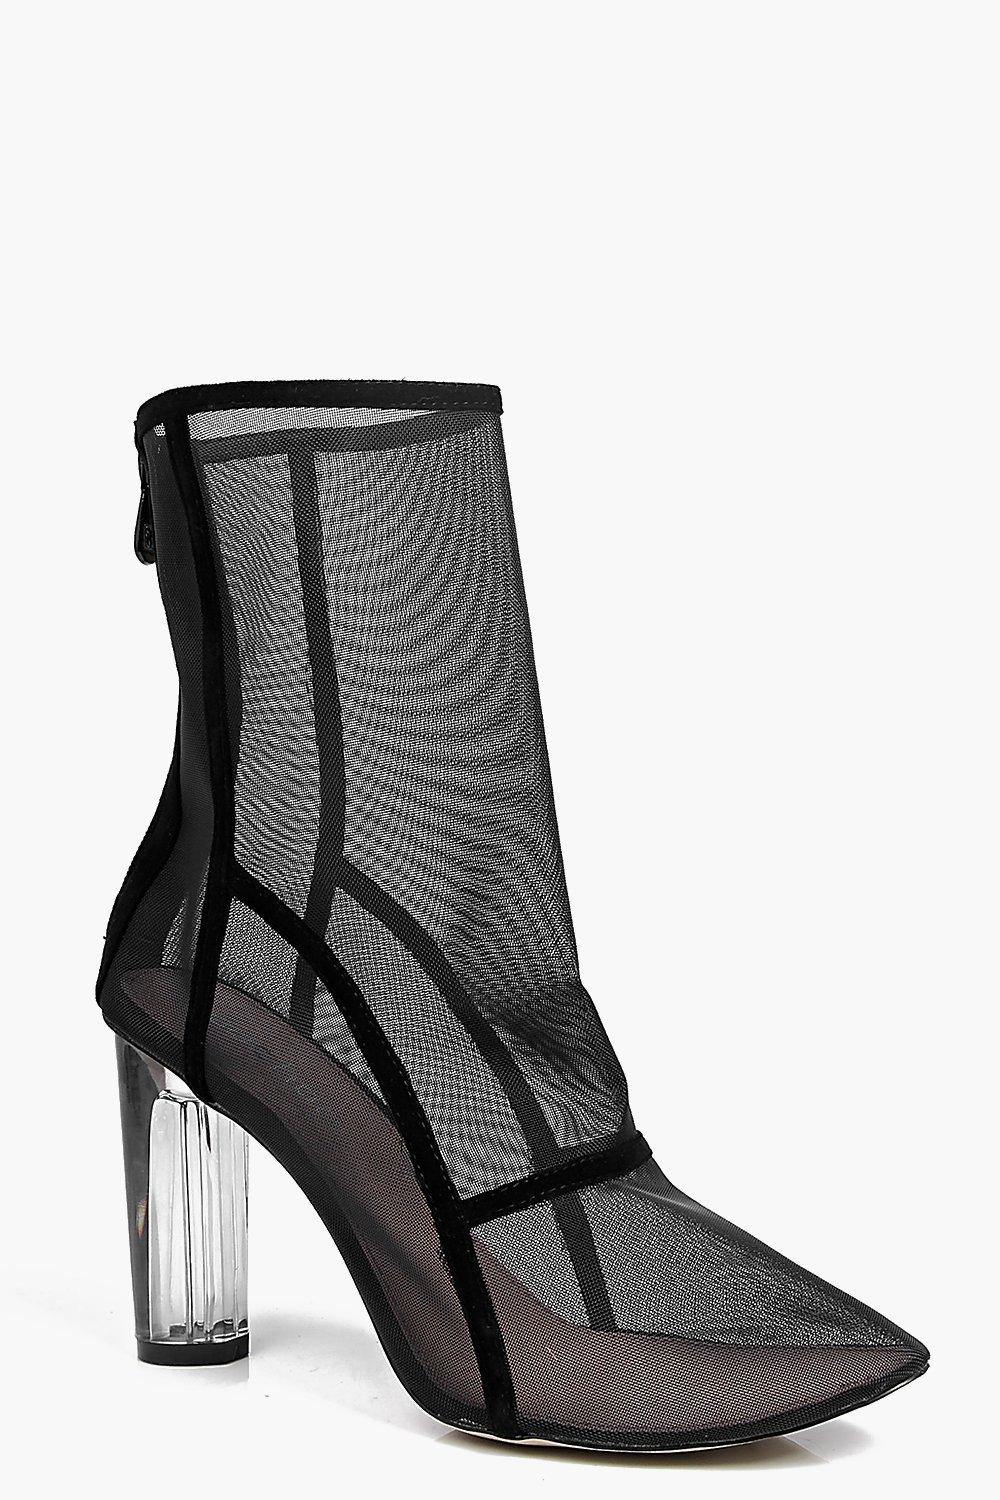 Clear Cylinder Mesh Sock Boot black